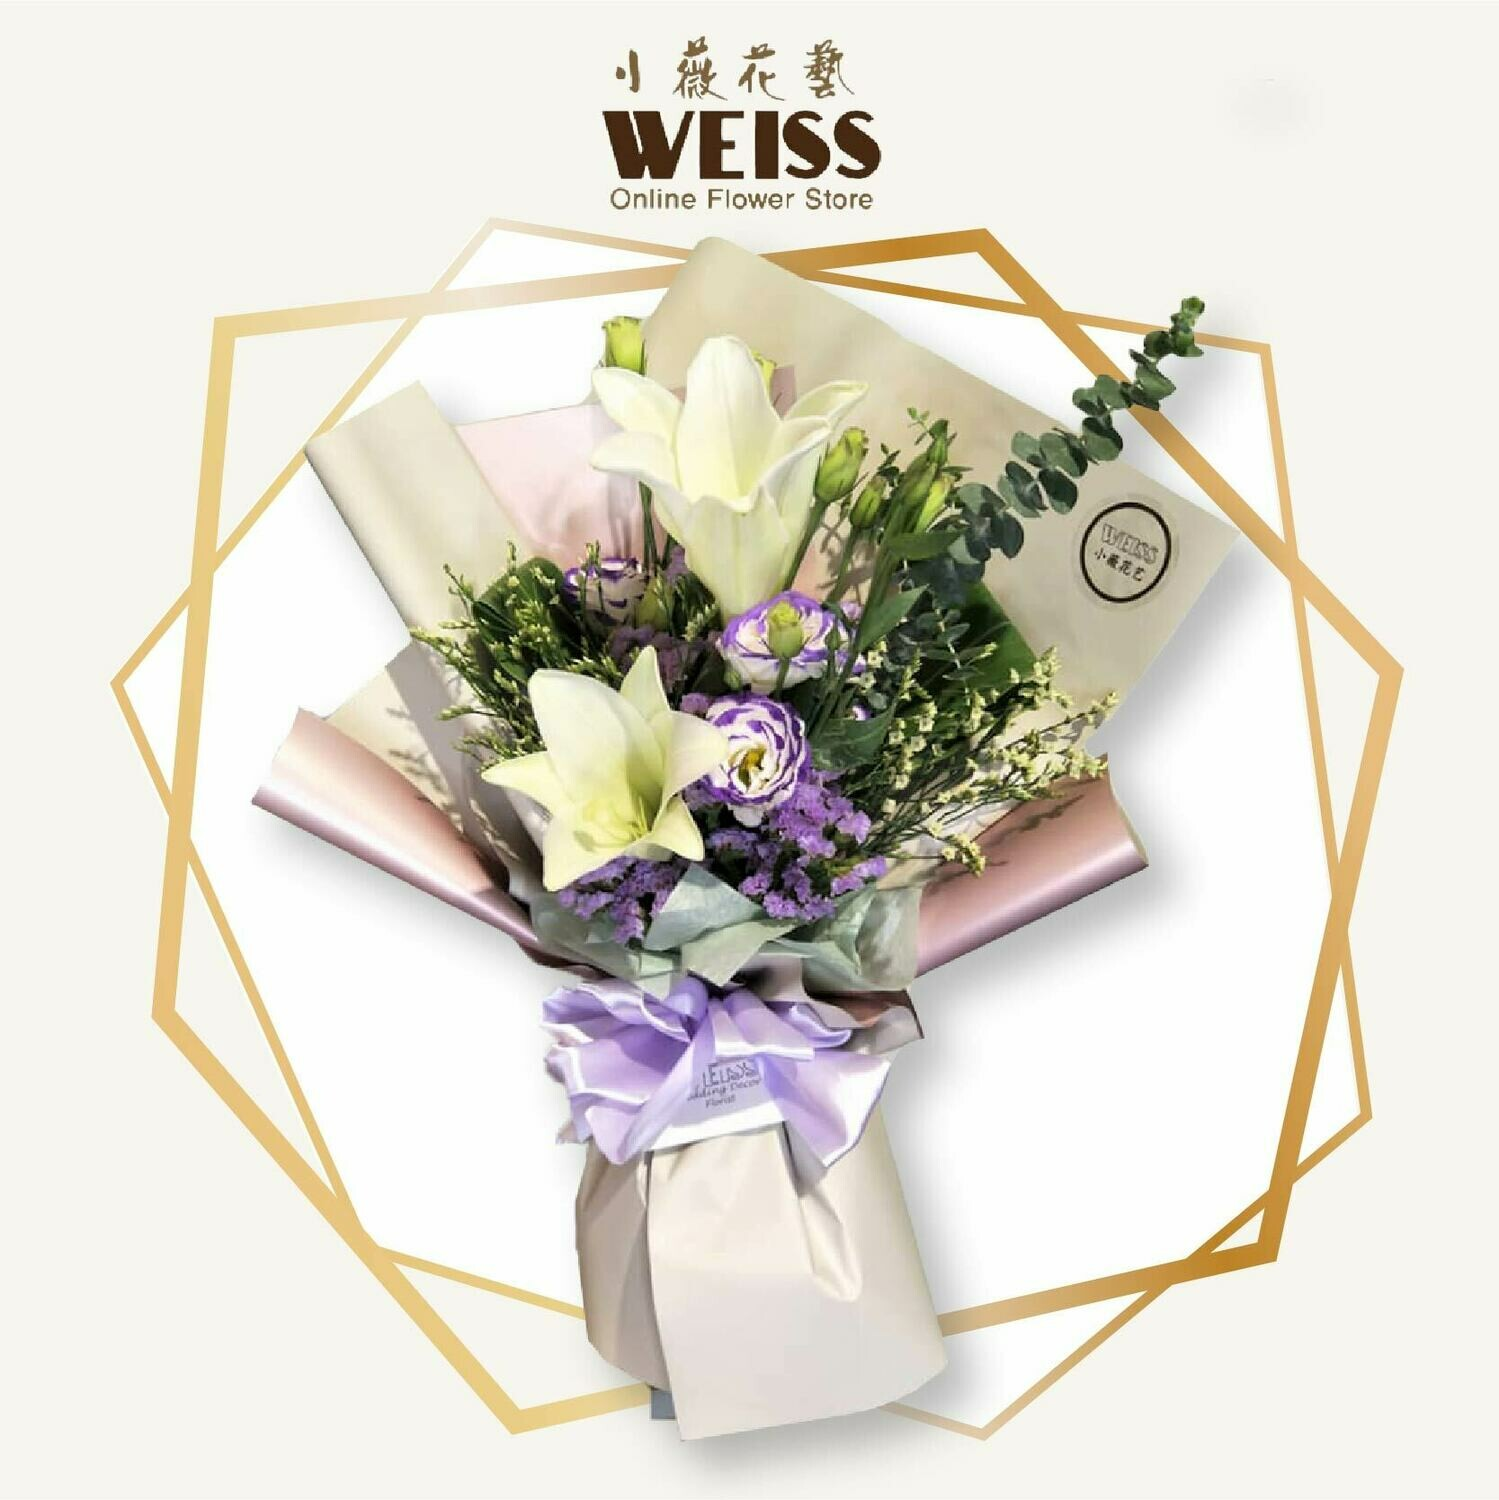 Weiss Florist 2stk lilies (Free Shipping! Only deliver in JB)